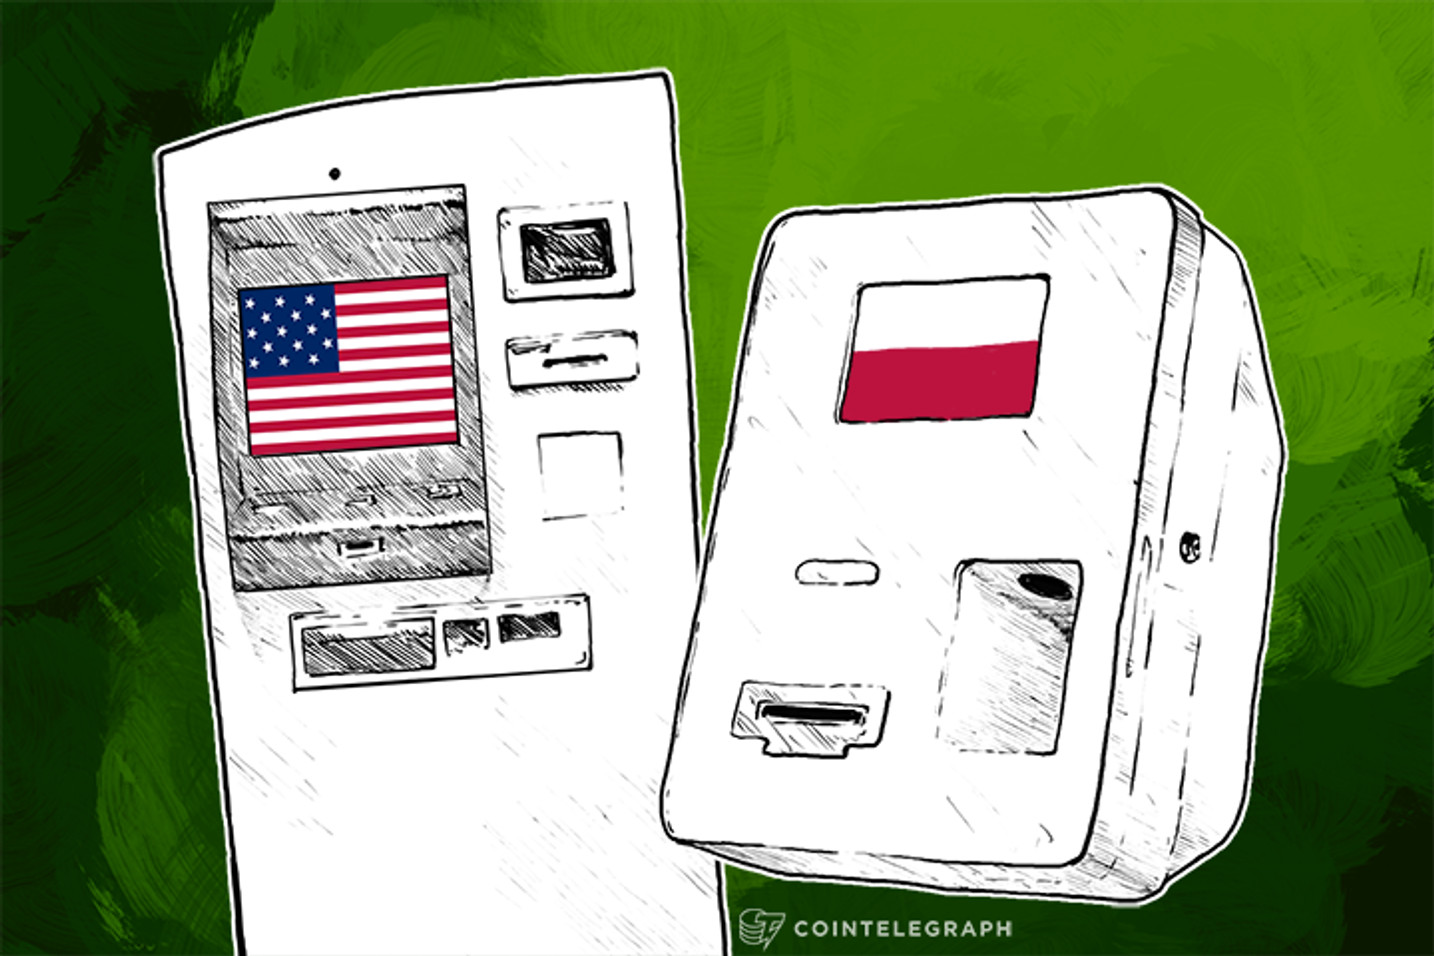 New BTMs: Warsaw Catching Up to Other EU Capitals, Plus 4 New Machines Across US